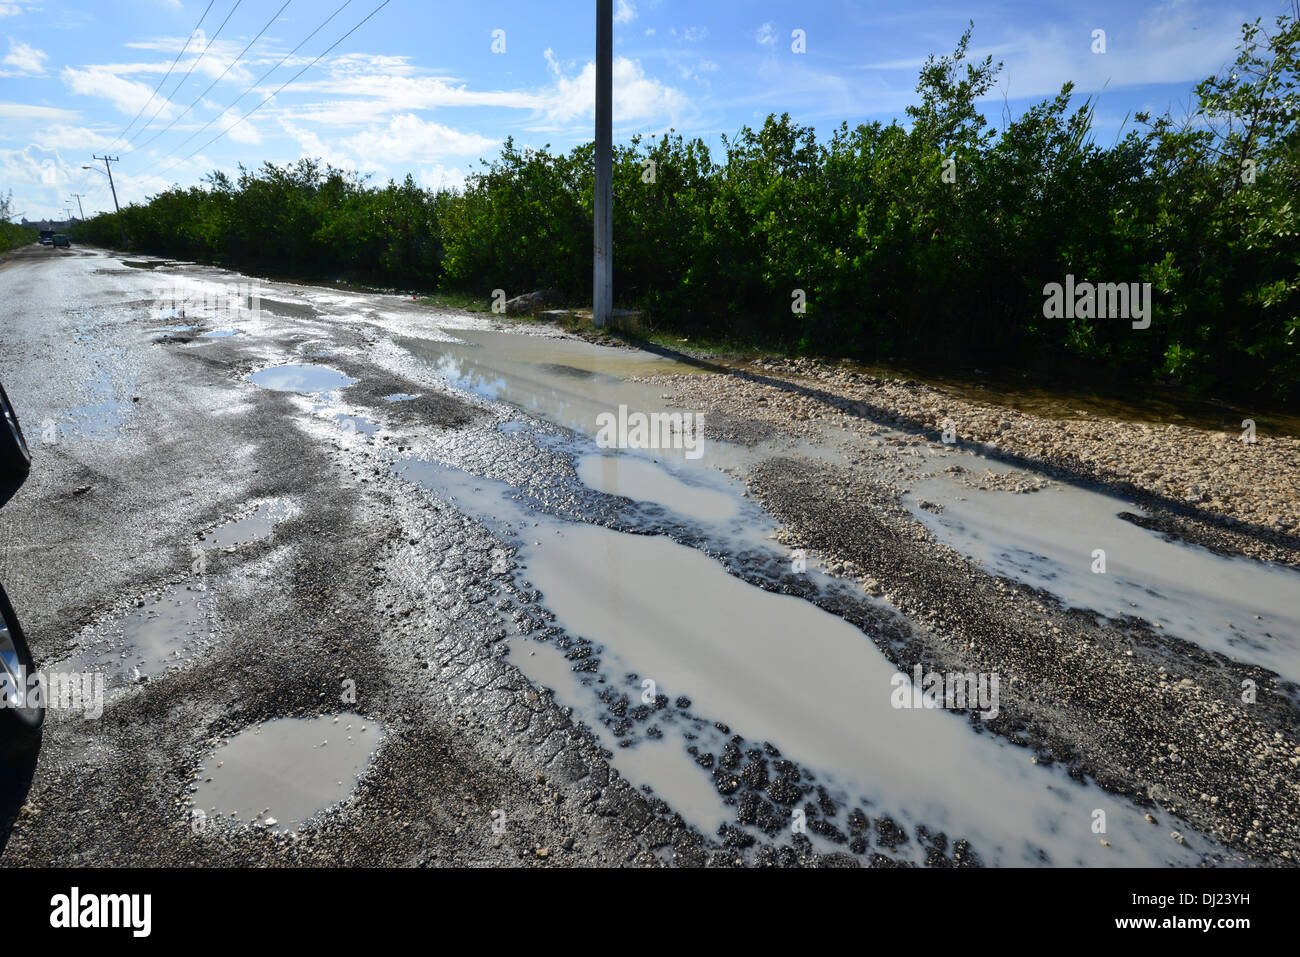 a flooded rutted road in mexico stock photo 62741941 alamy